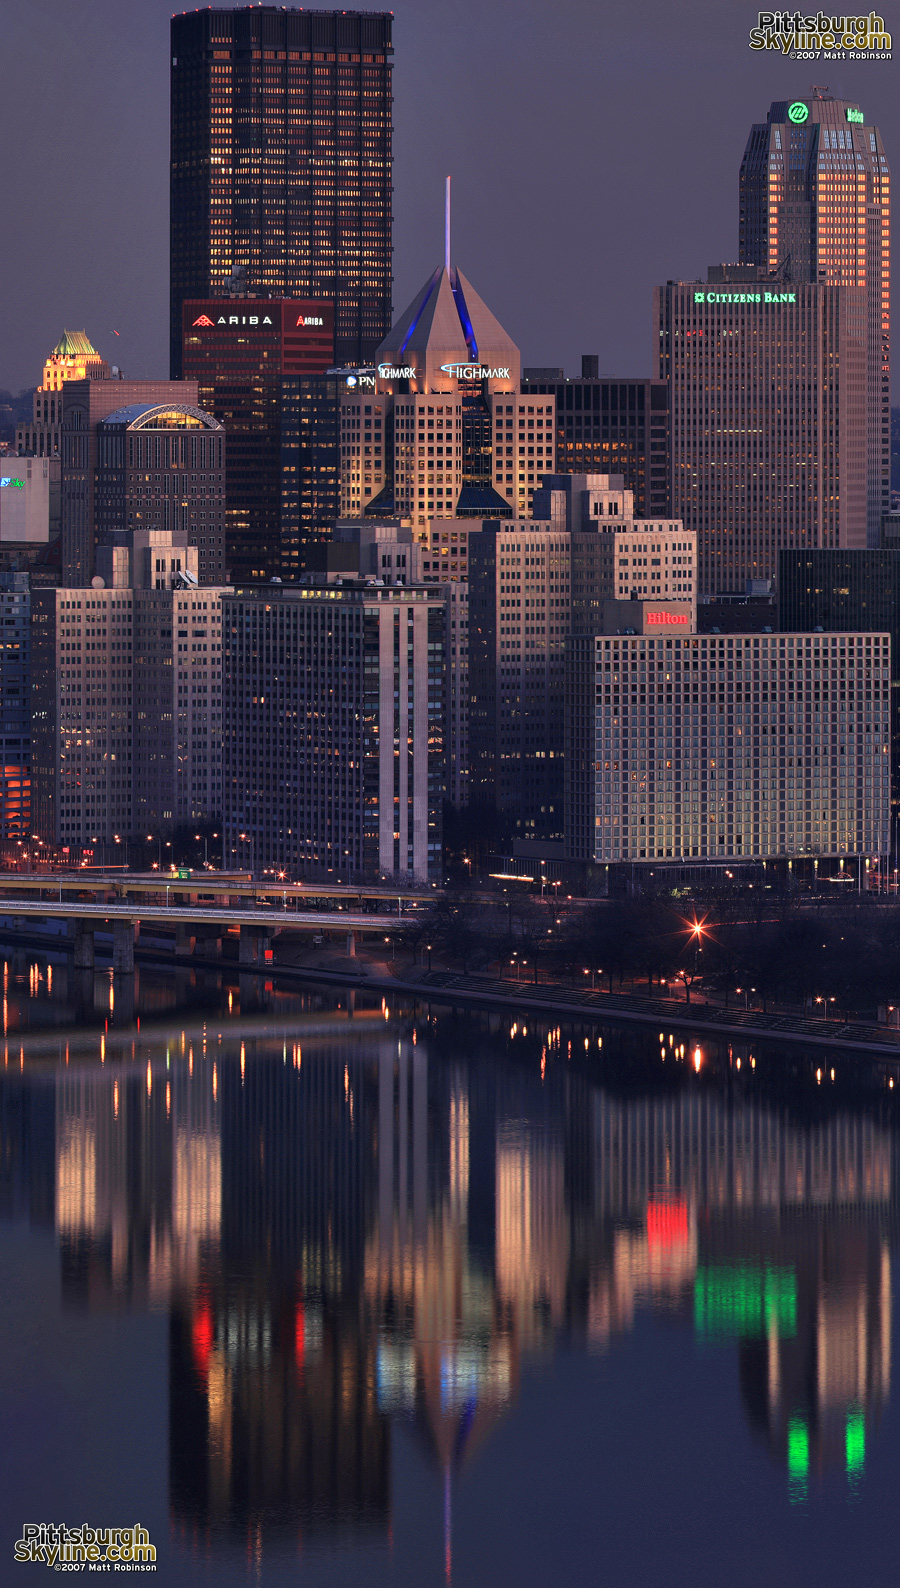 Pittsburgh reflects at the confluence